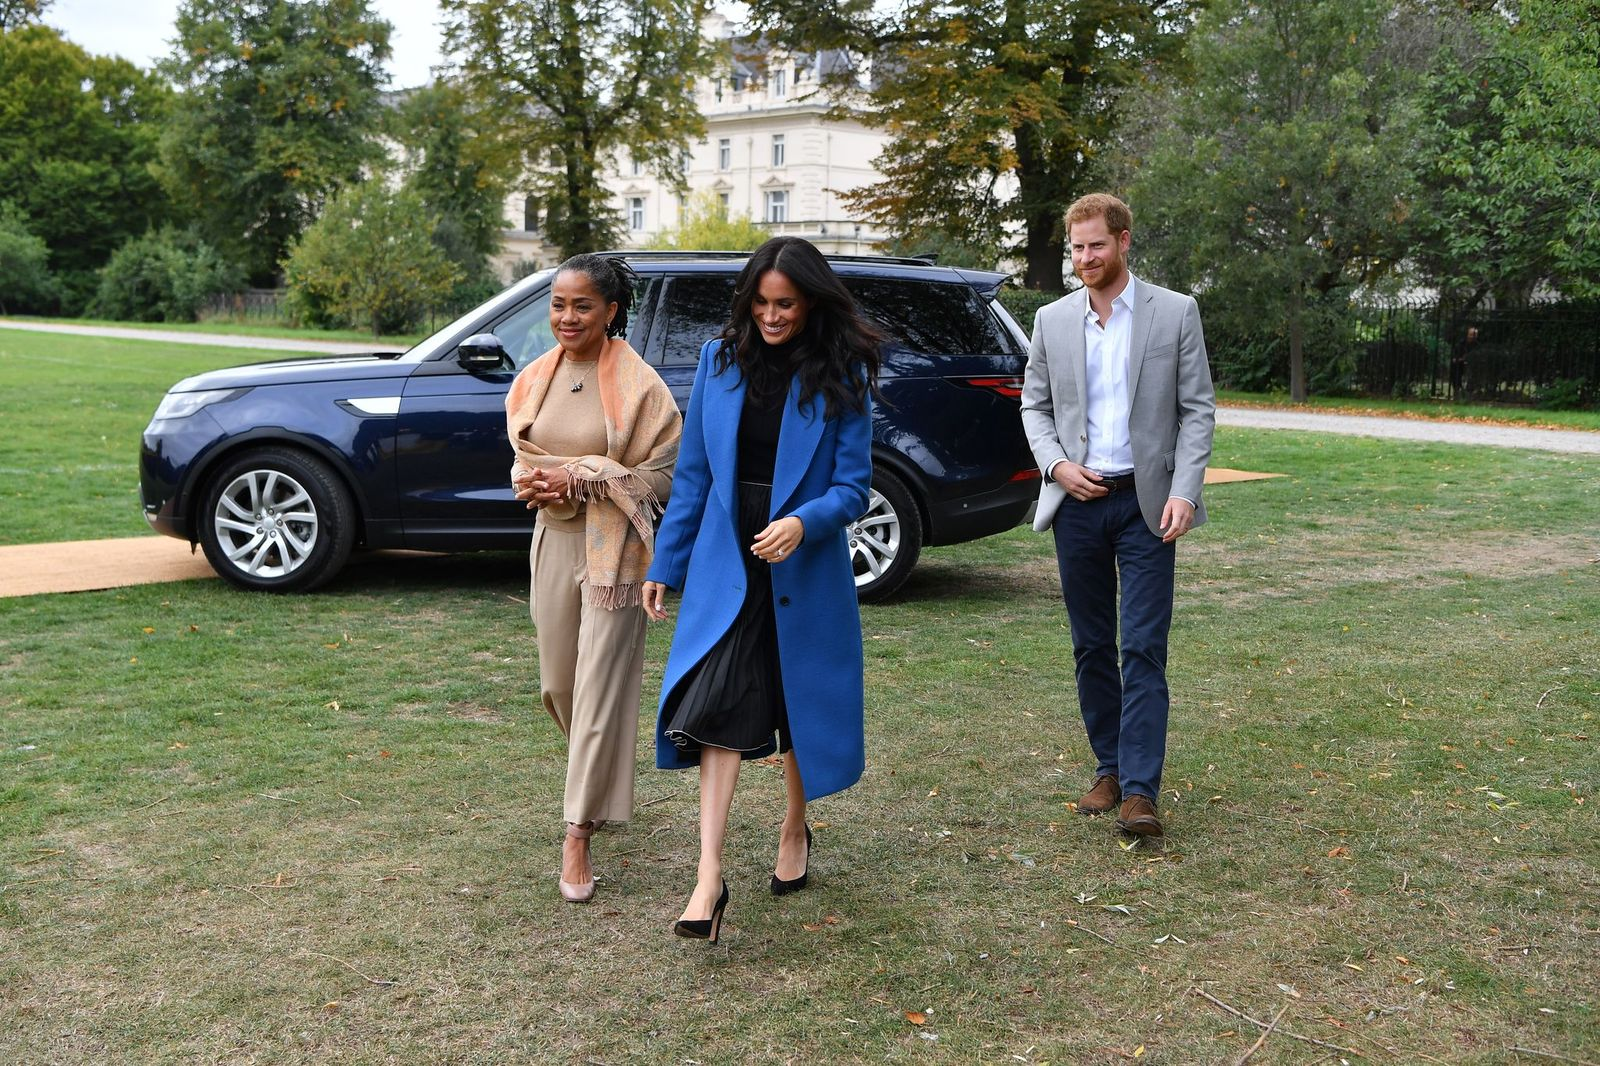 Meghan  arrives with her mother Doria Ragland and Prince Harry at Kensington Palace on September 20, 2018 | Photo: Getty Images